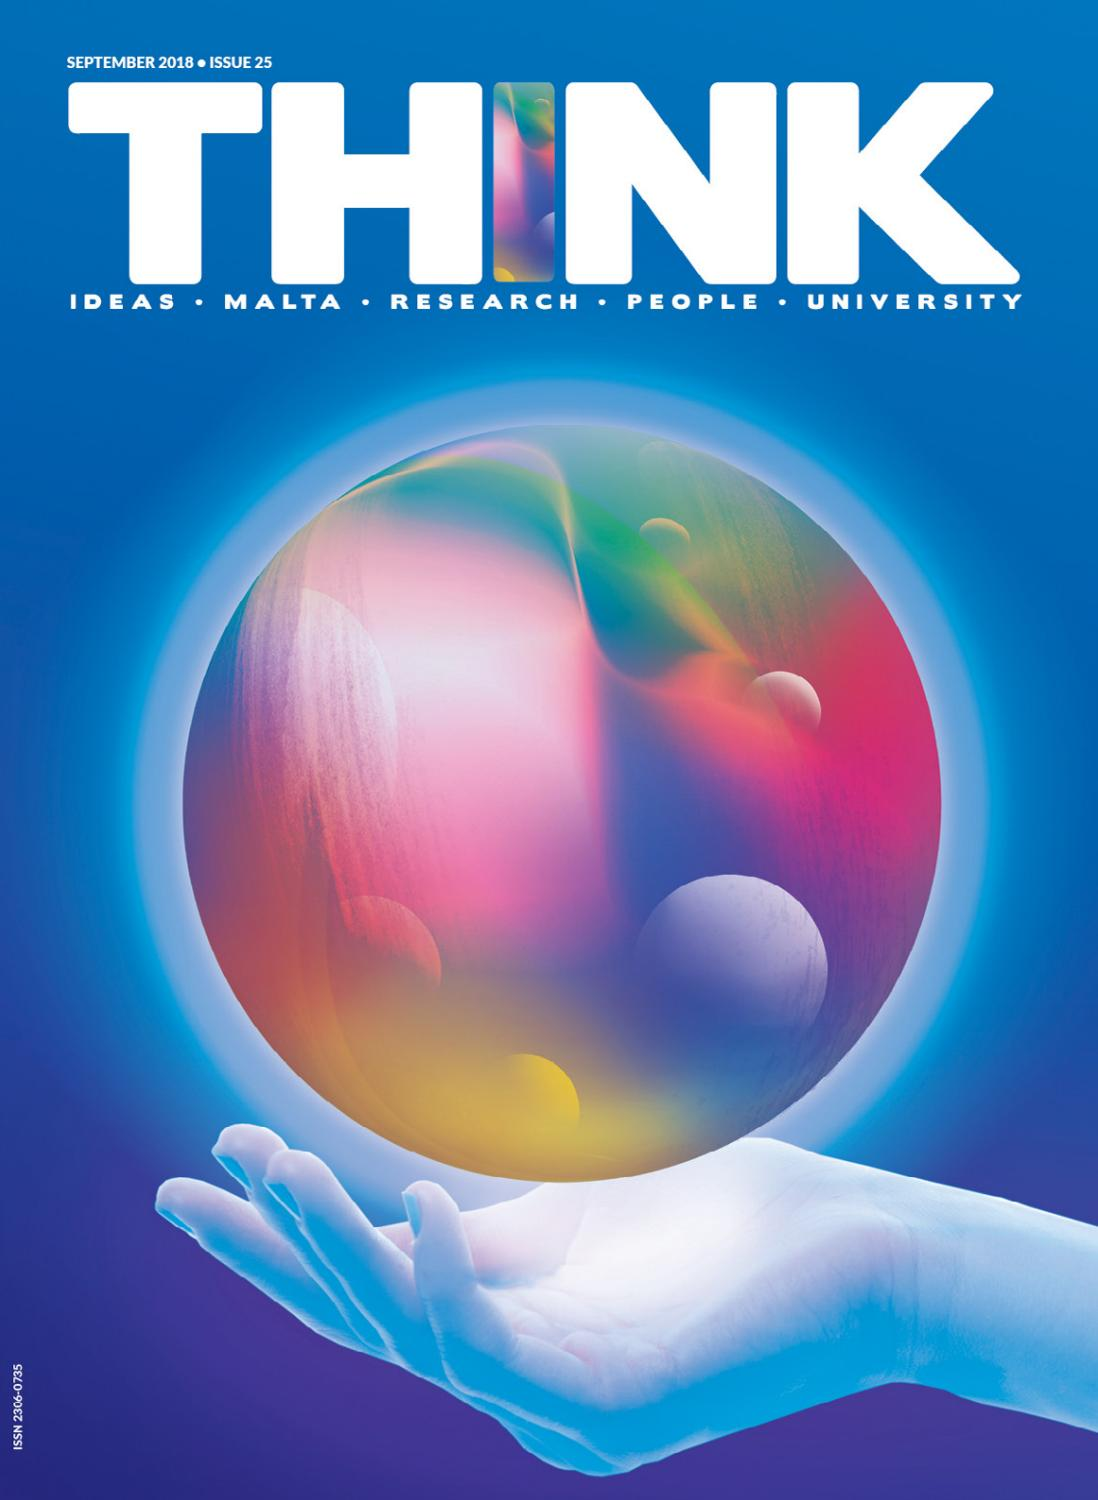 THINK - Issue 25 by Think - issuu